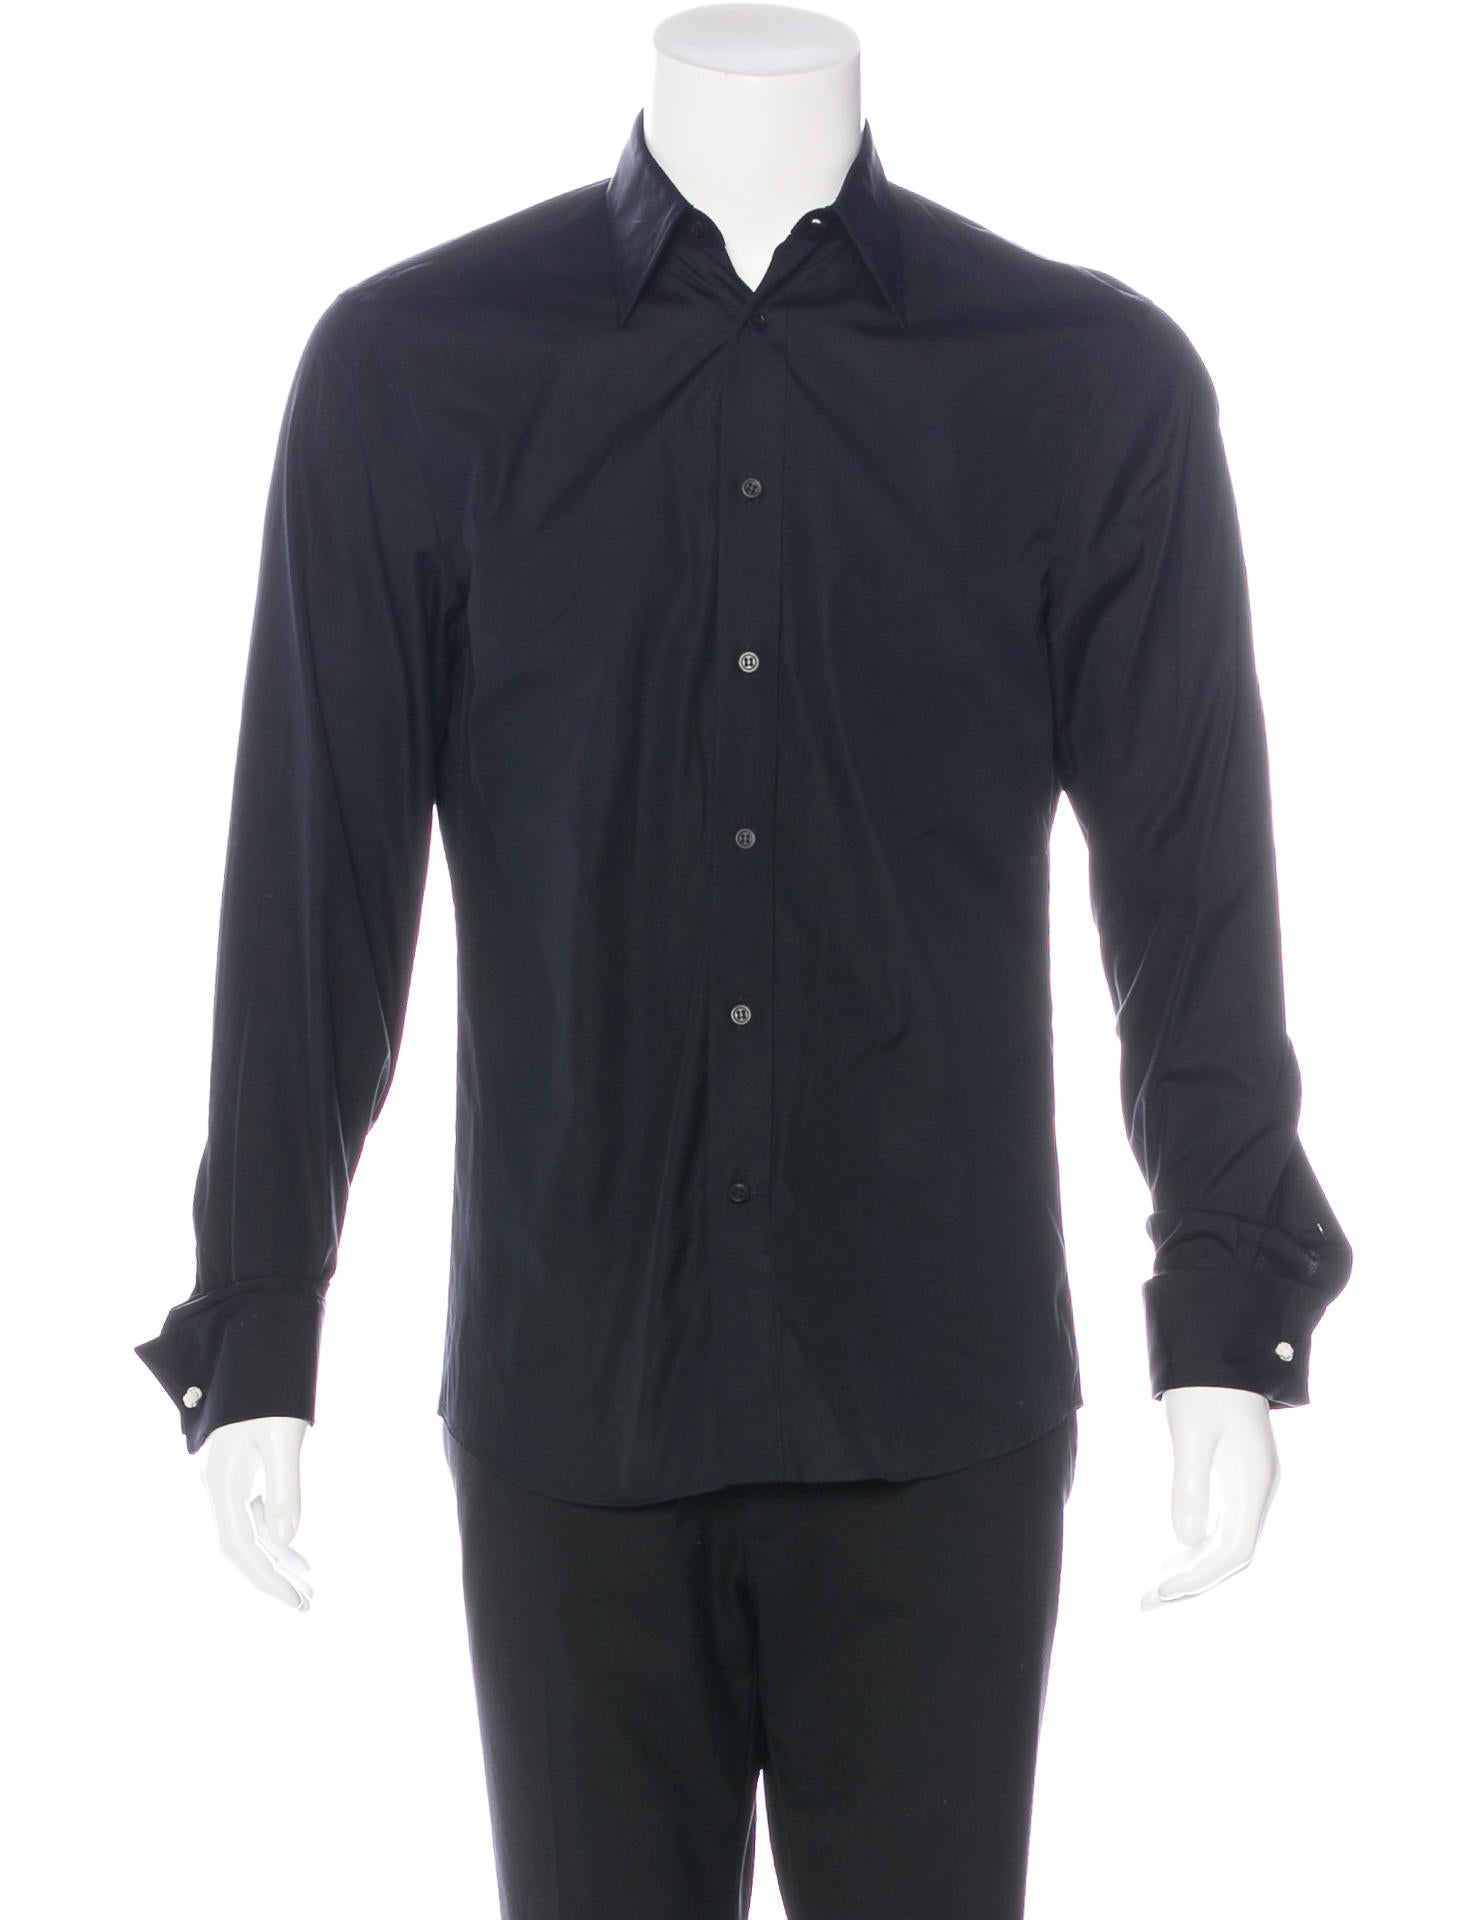 Alexander Mcqueen French Cuff Dress Shirt W Tags